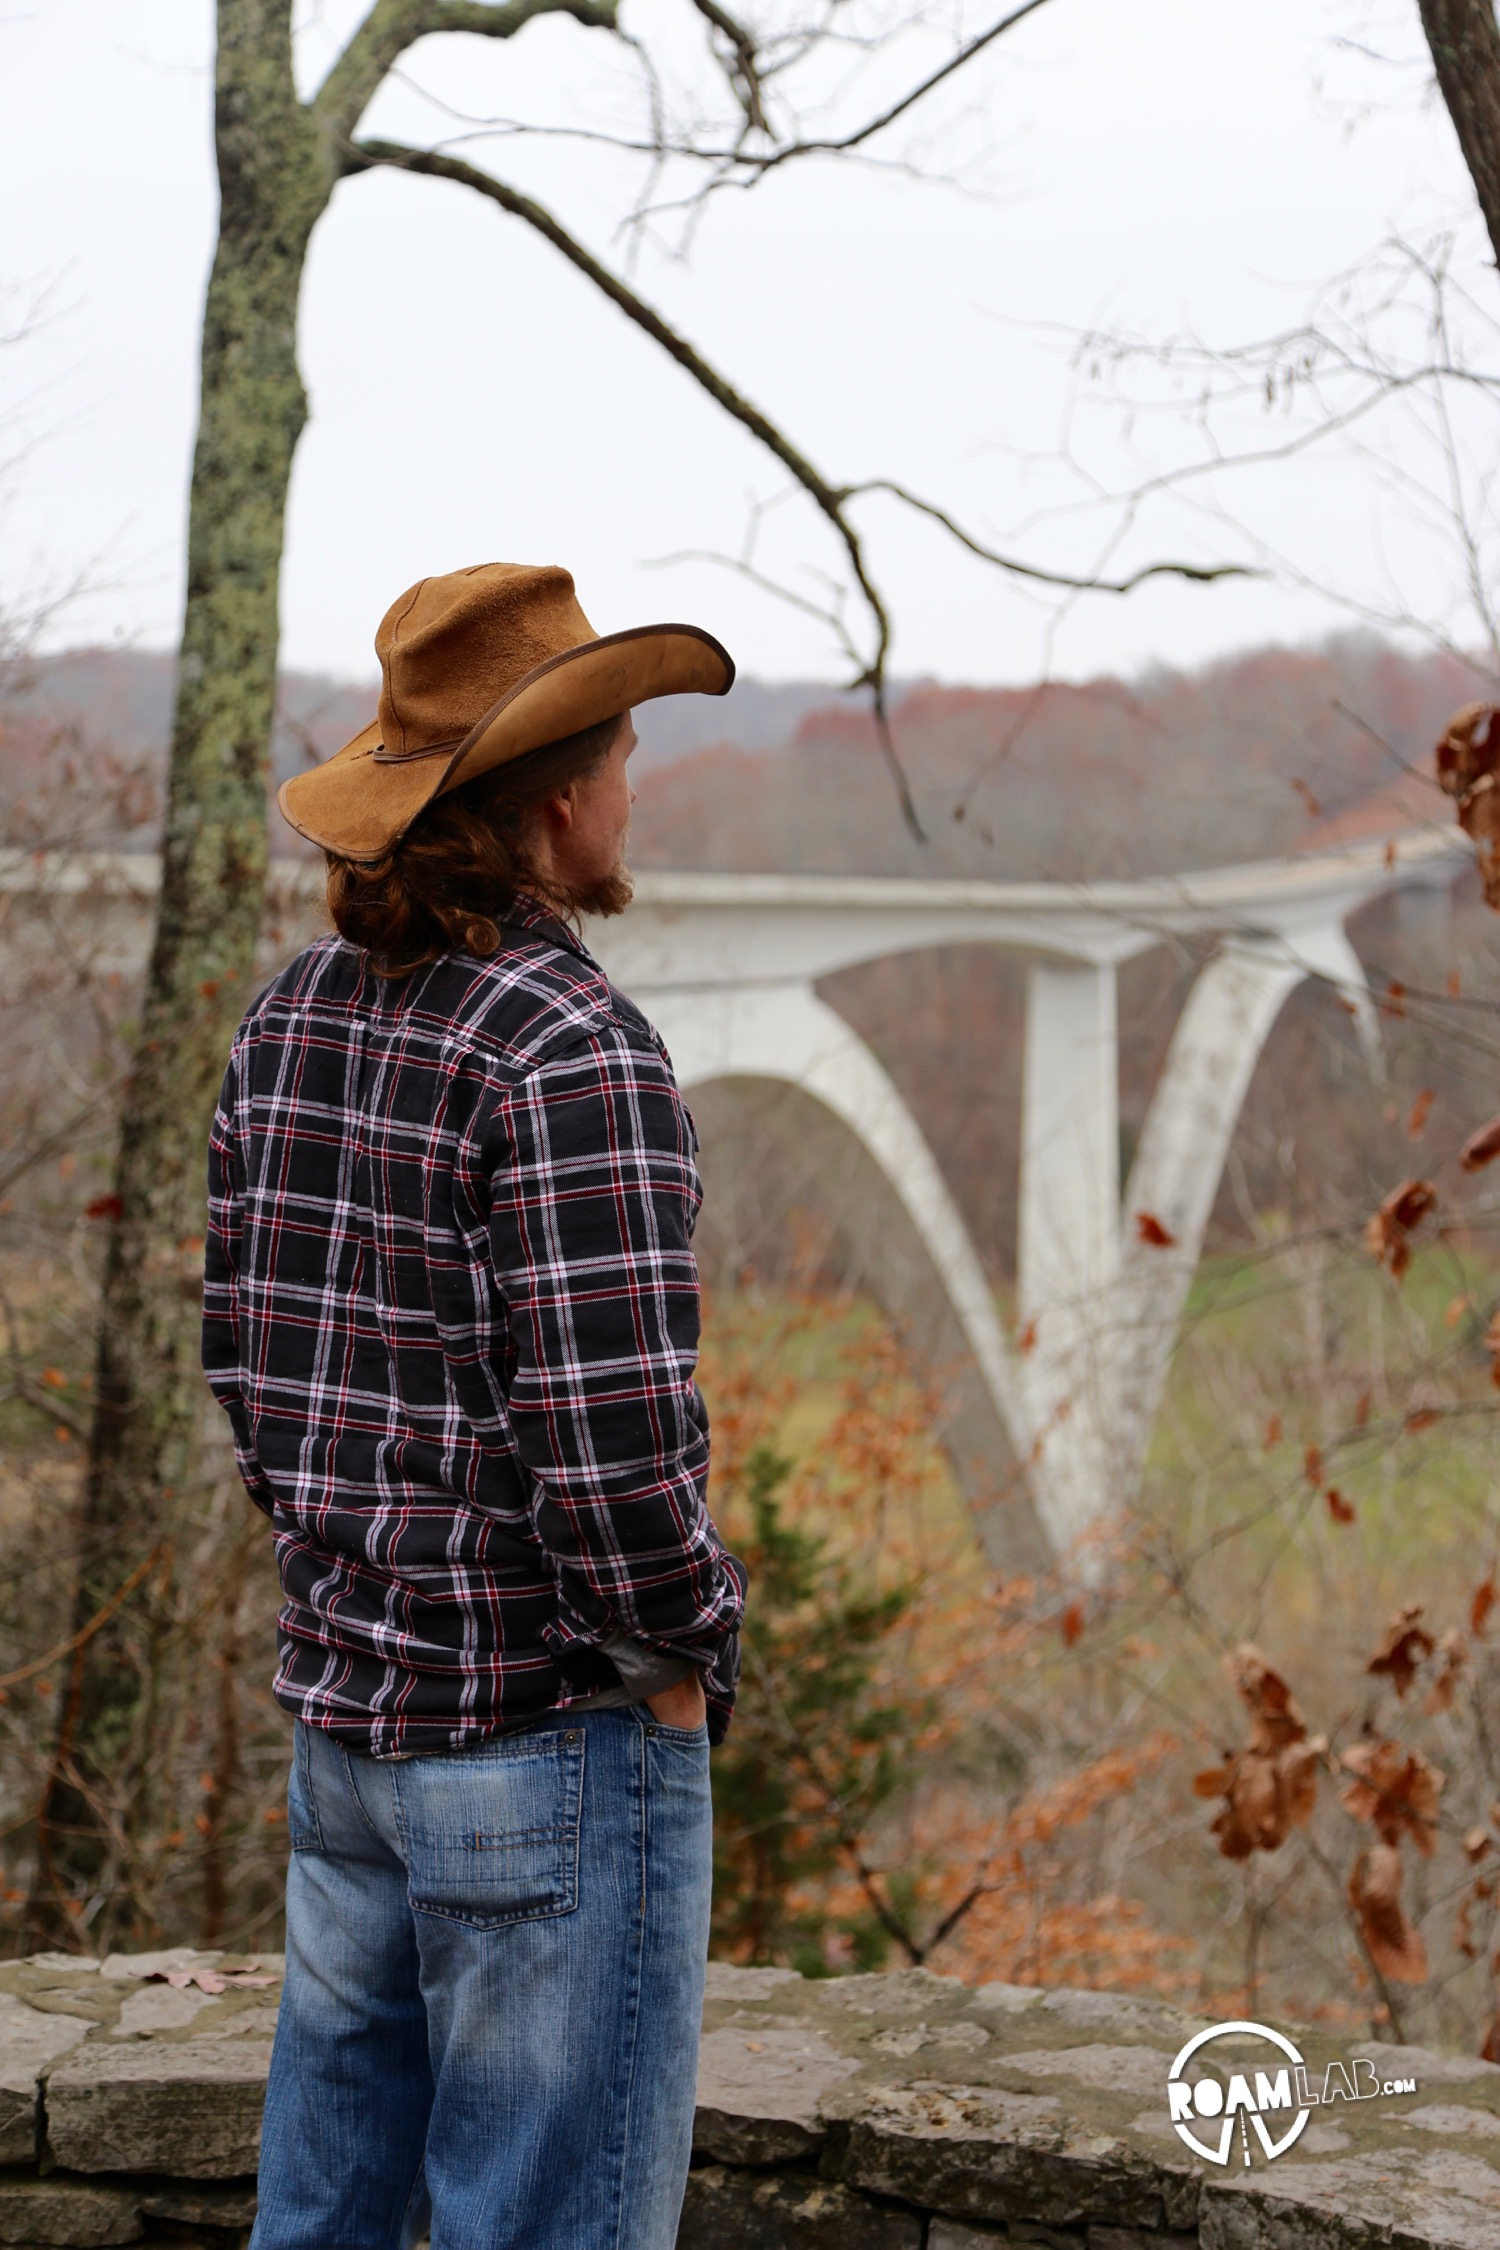 Overlooking the Double Arch Bridge along the Natchez Trace Parkway.